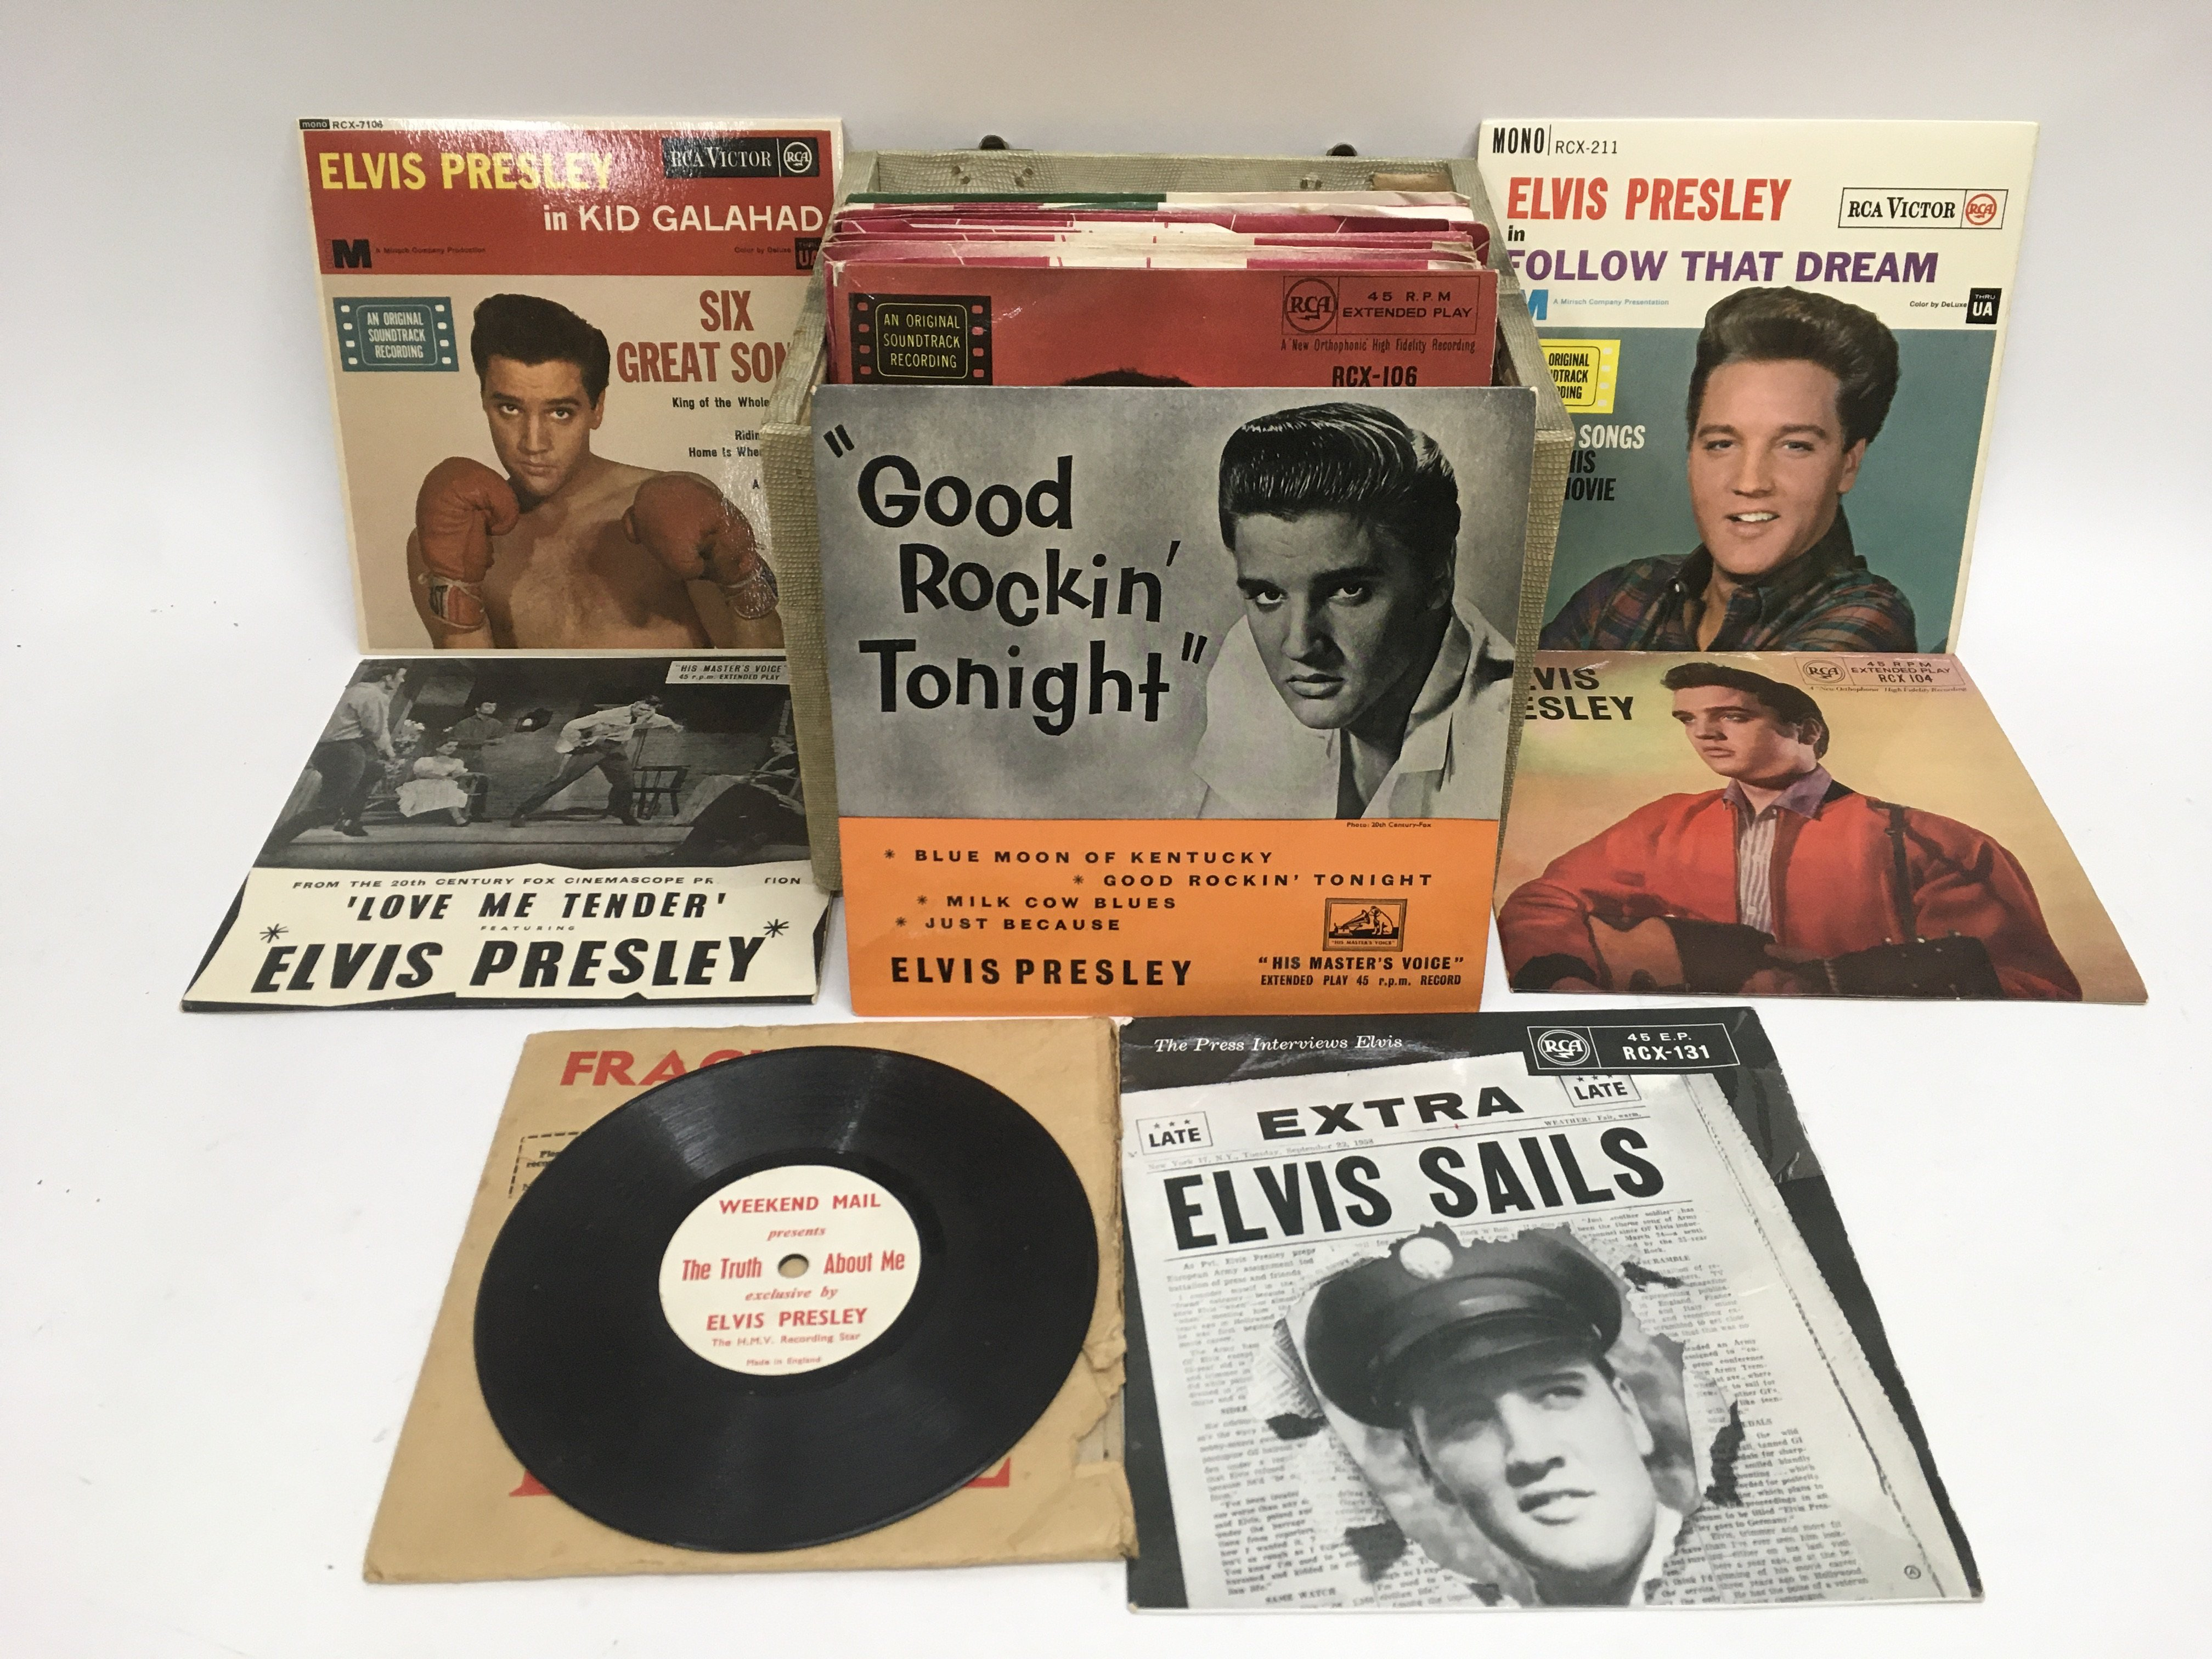 A record case of Elvis Presley EPs and 7inch singl